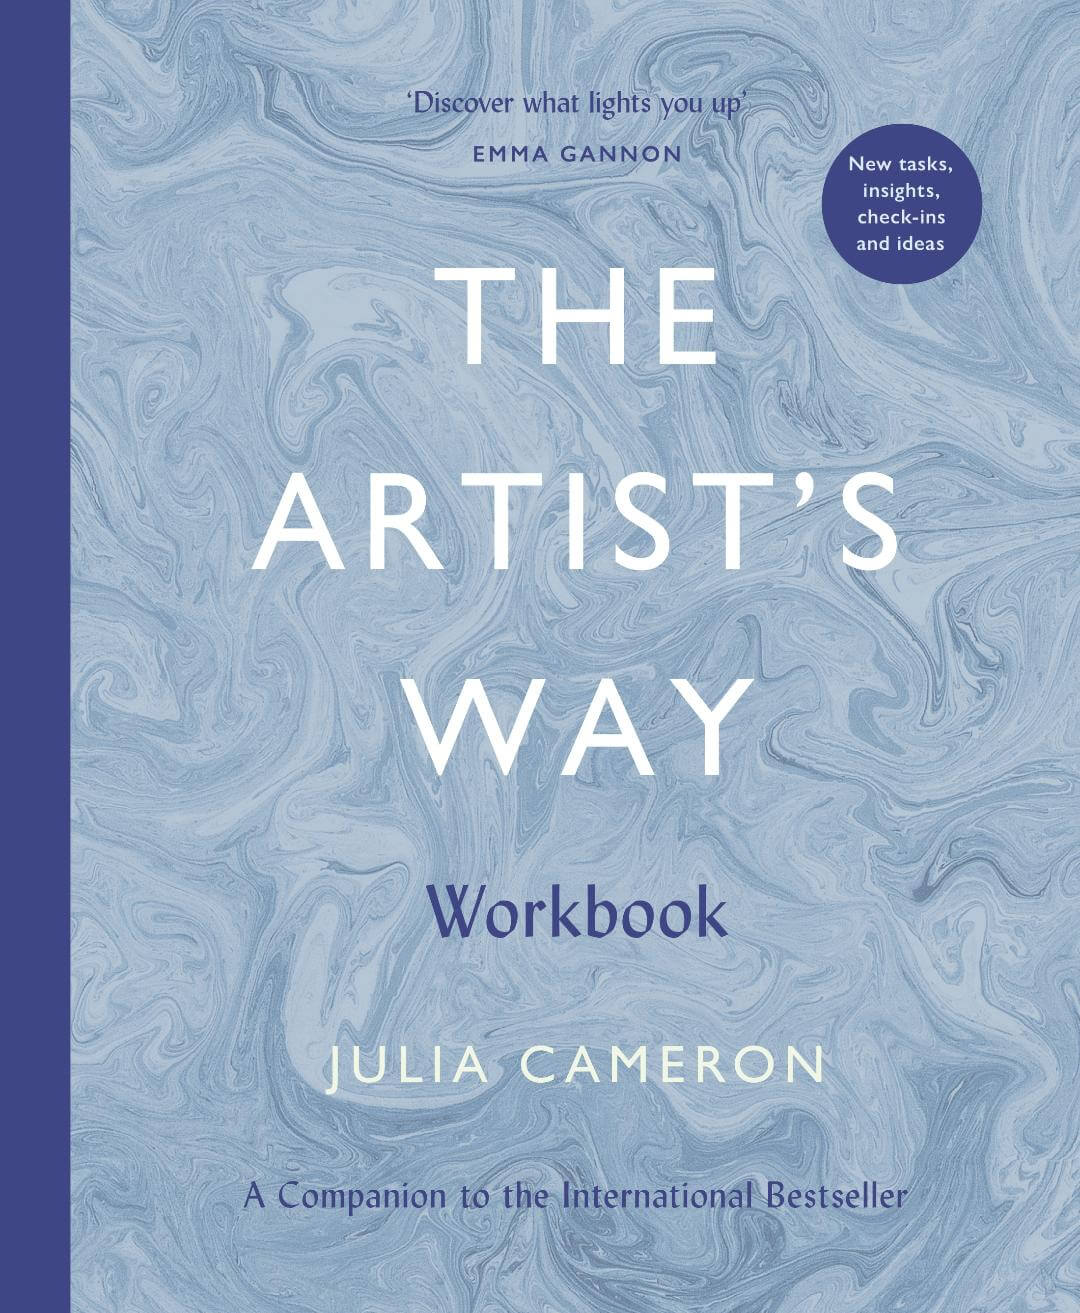 The Artist's Way Workbook - UK 2020 Book Cover